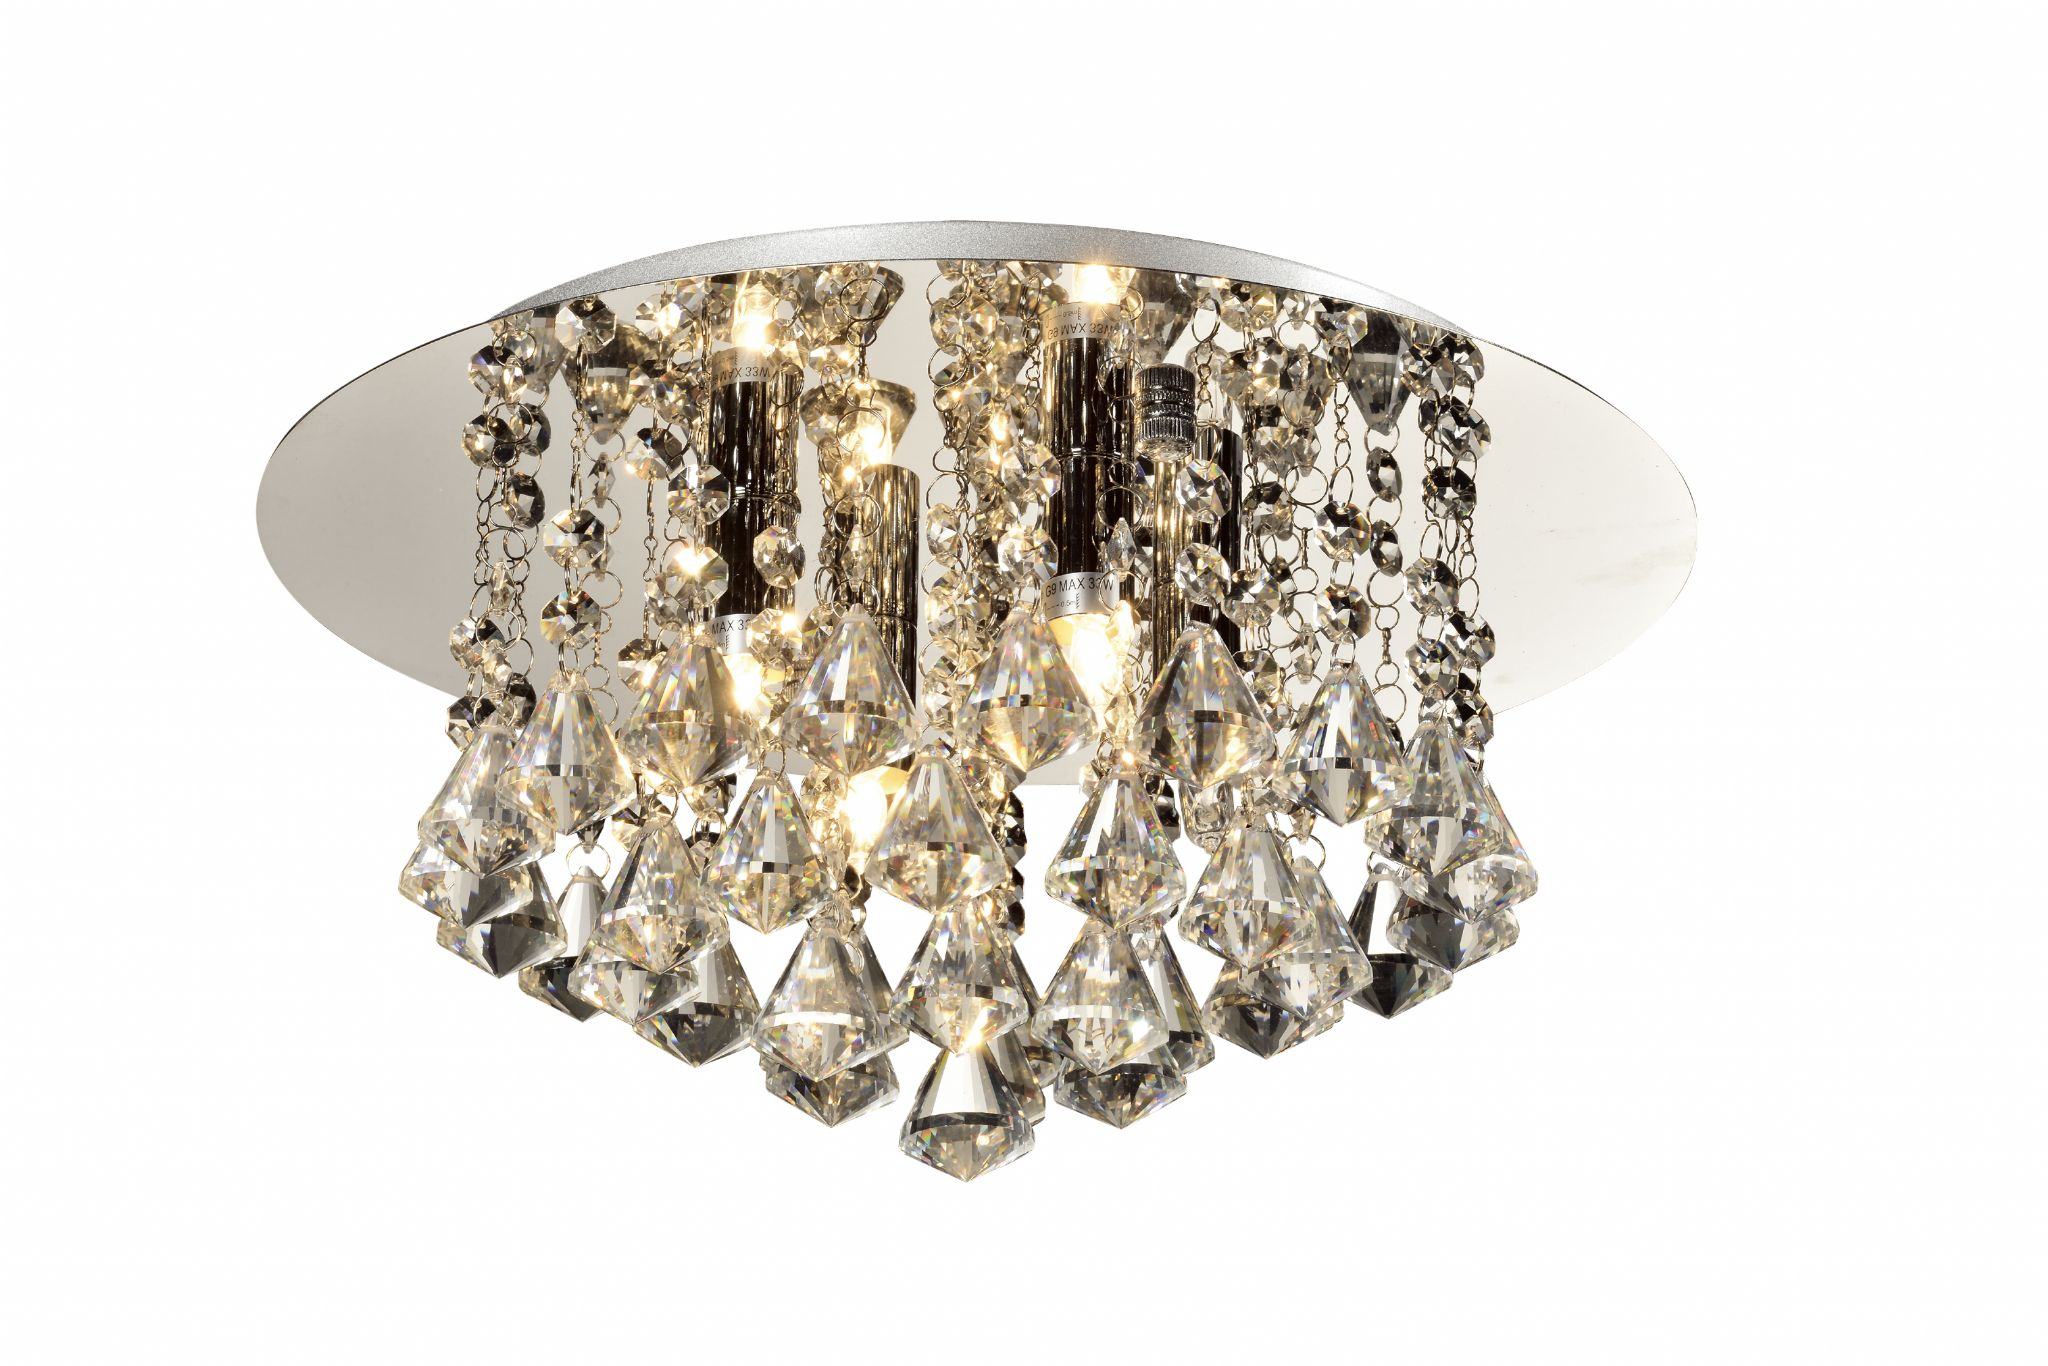 Chloe 4 Light Flush Fitting In Polished Chrome With